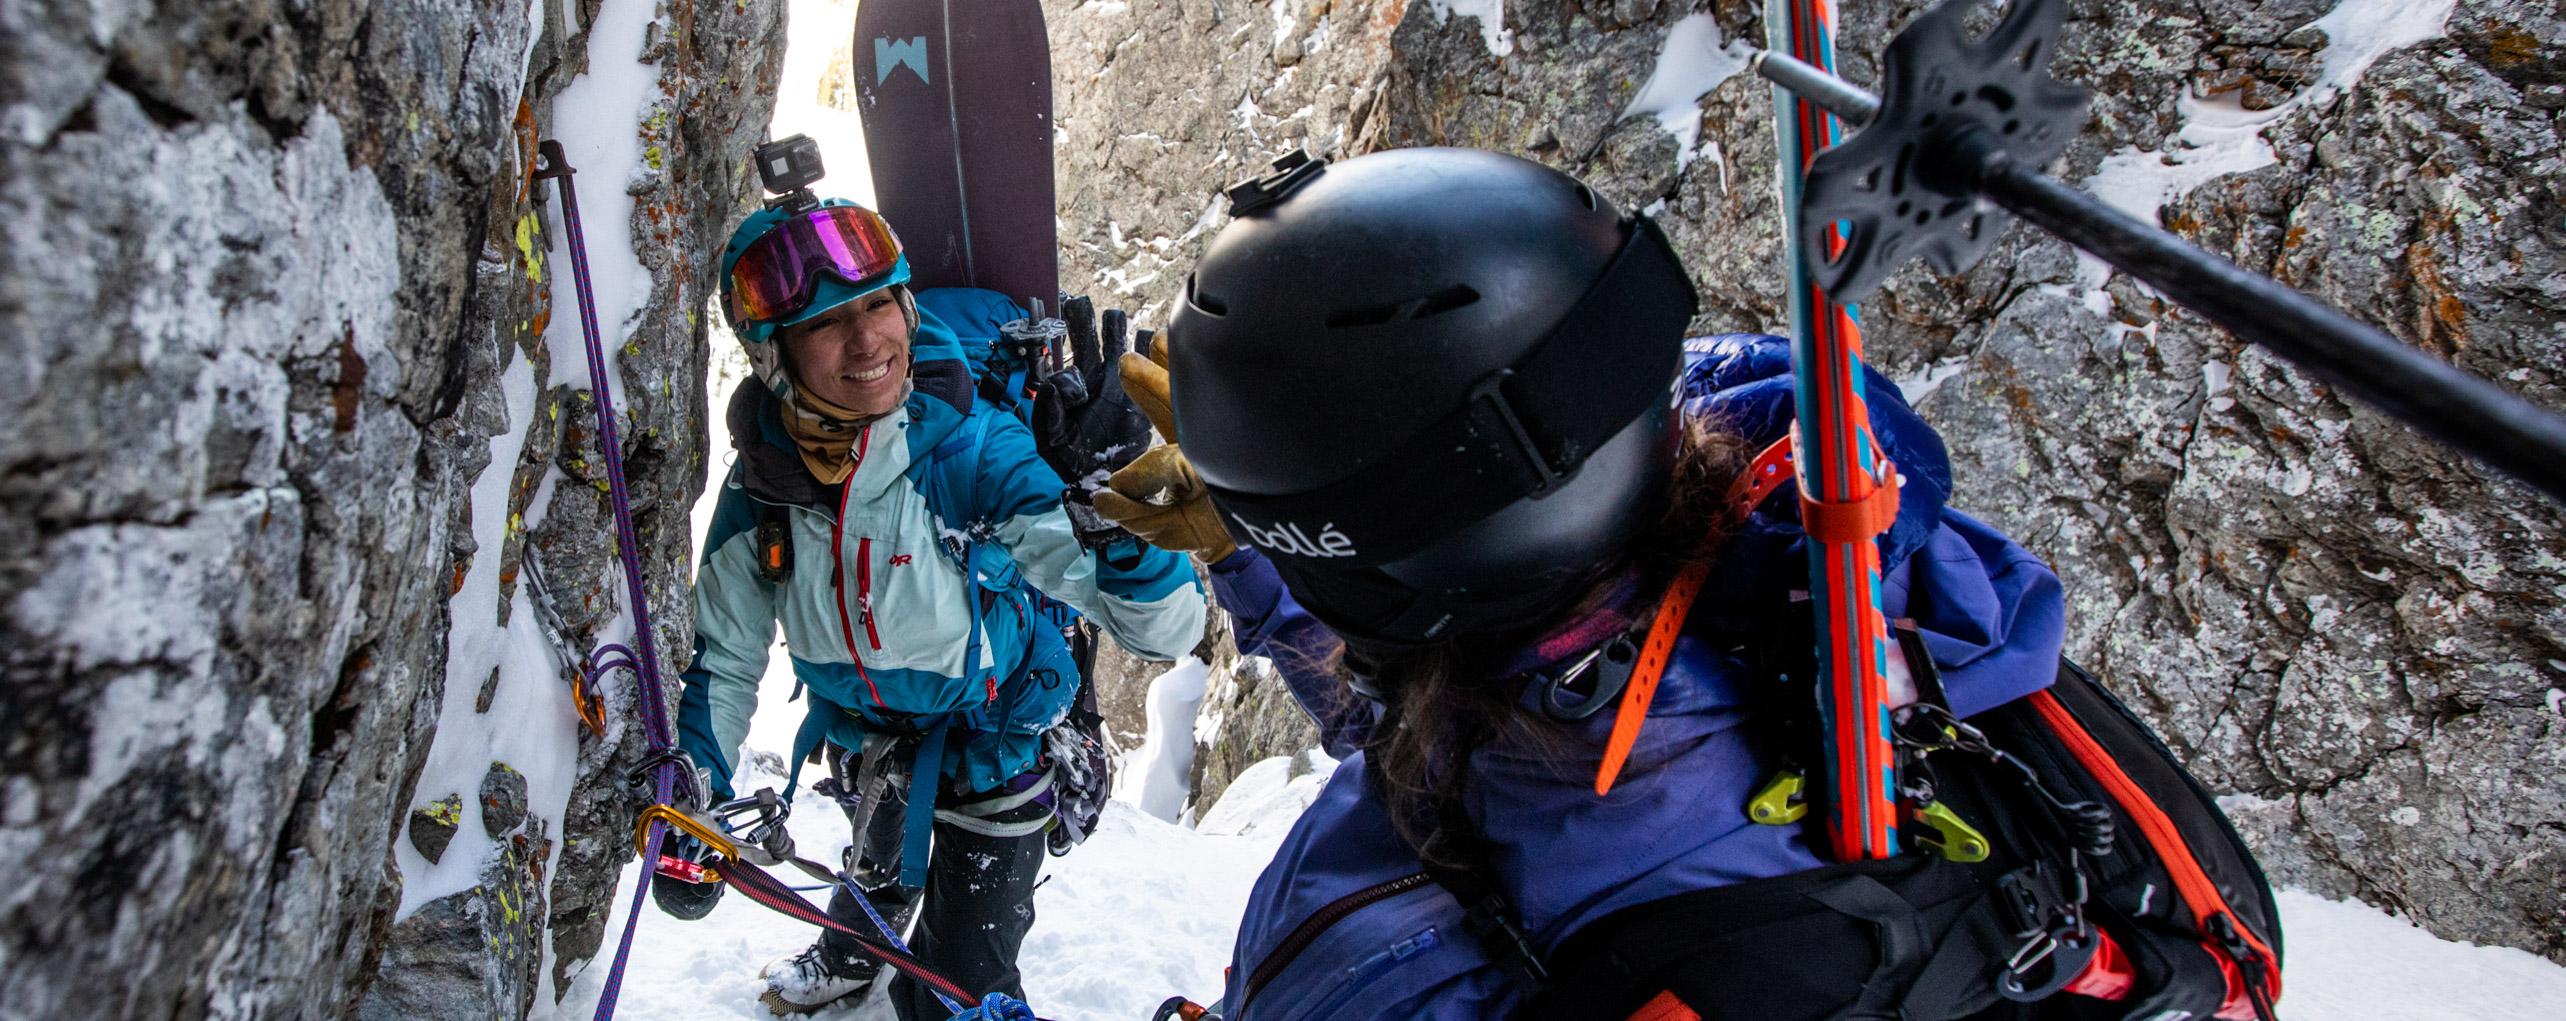 women-in-the-backcountry-dirtbagdreams.com